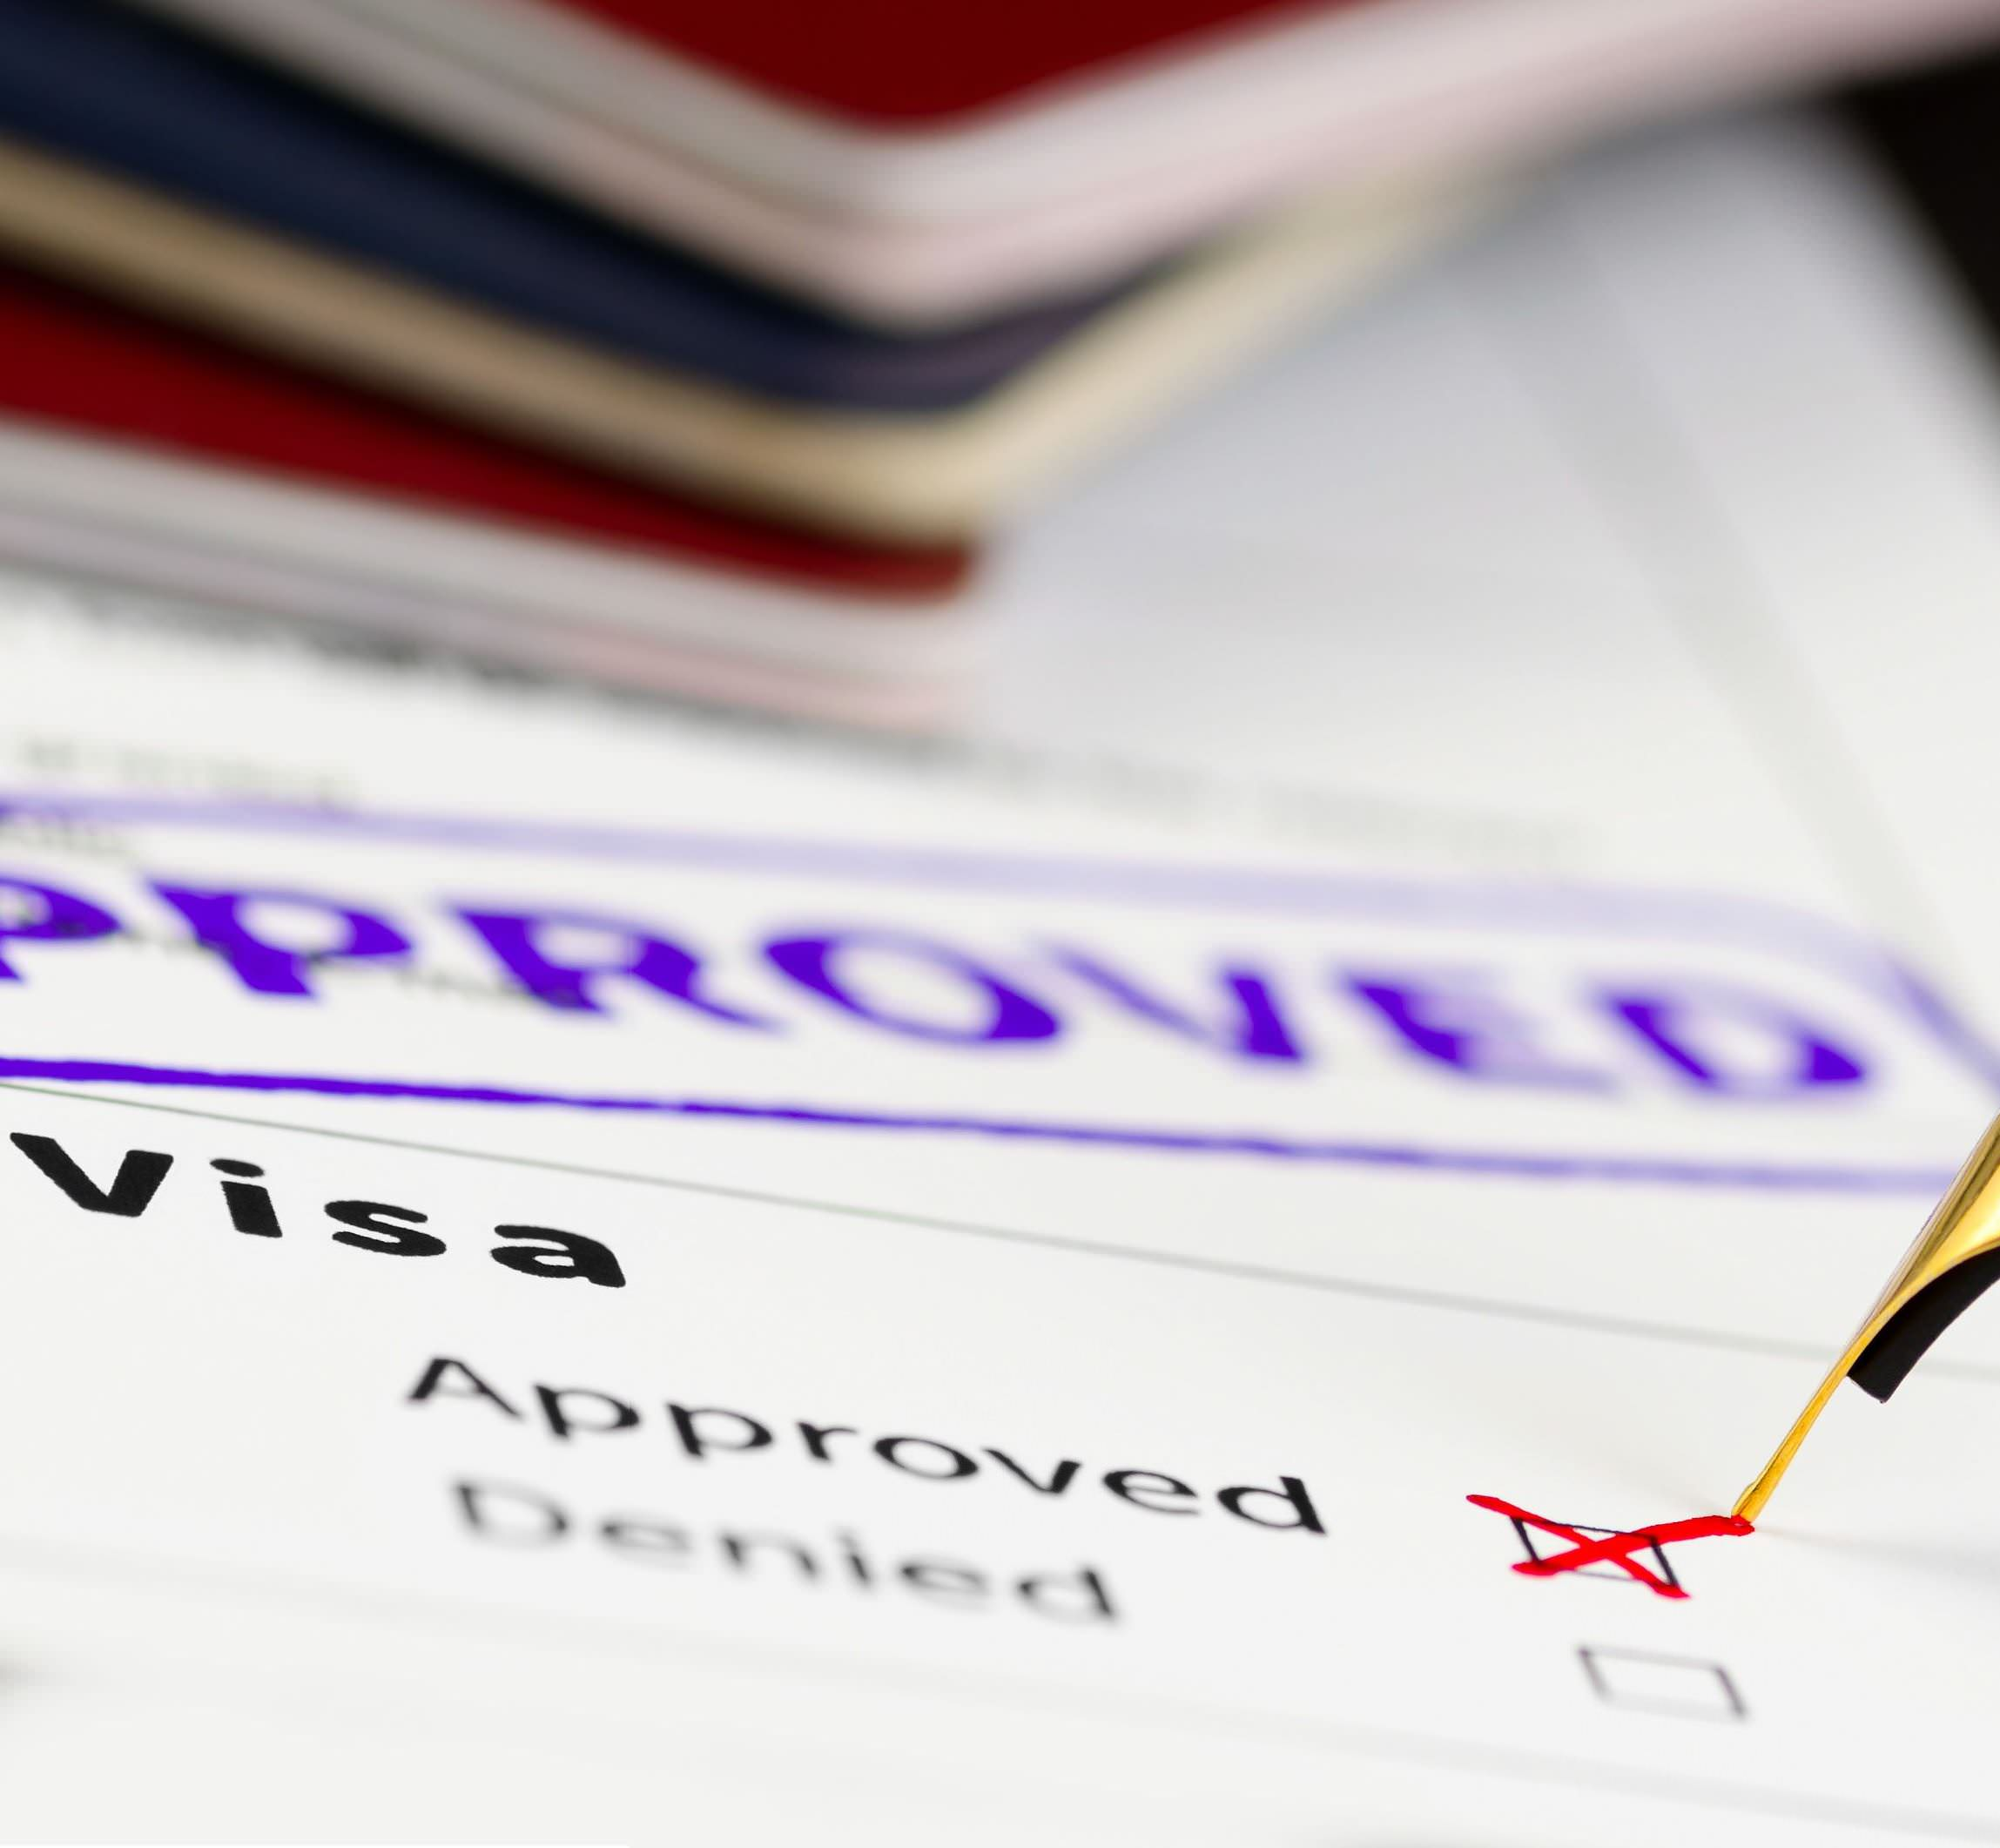 California Tech Company Fined For H1 B Visa Violations